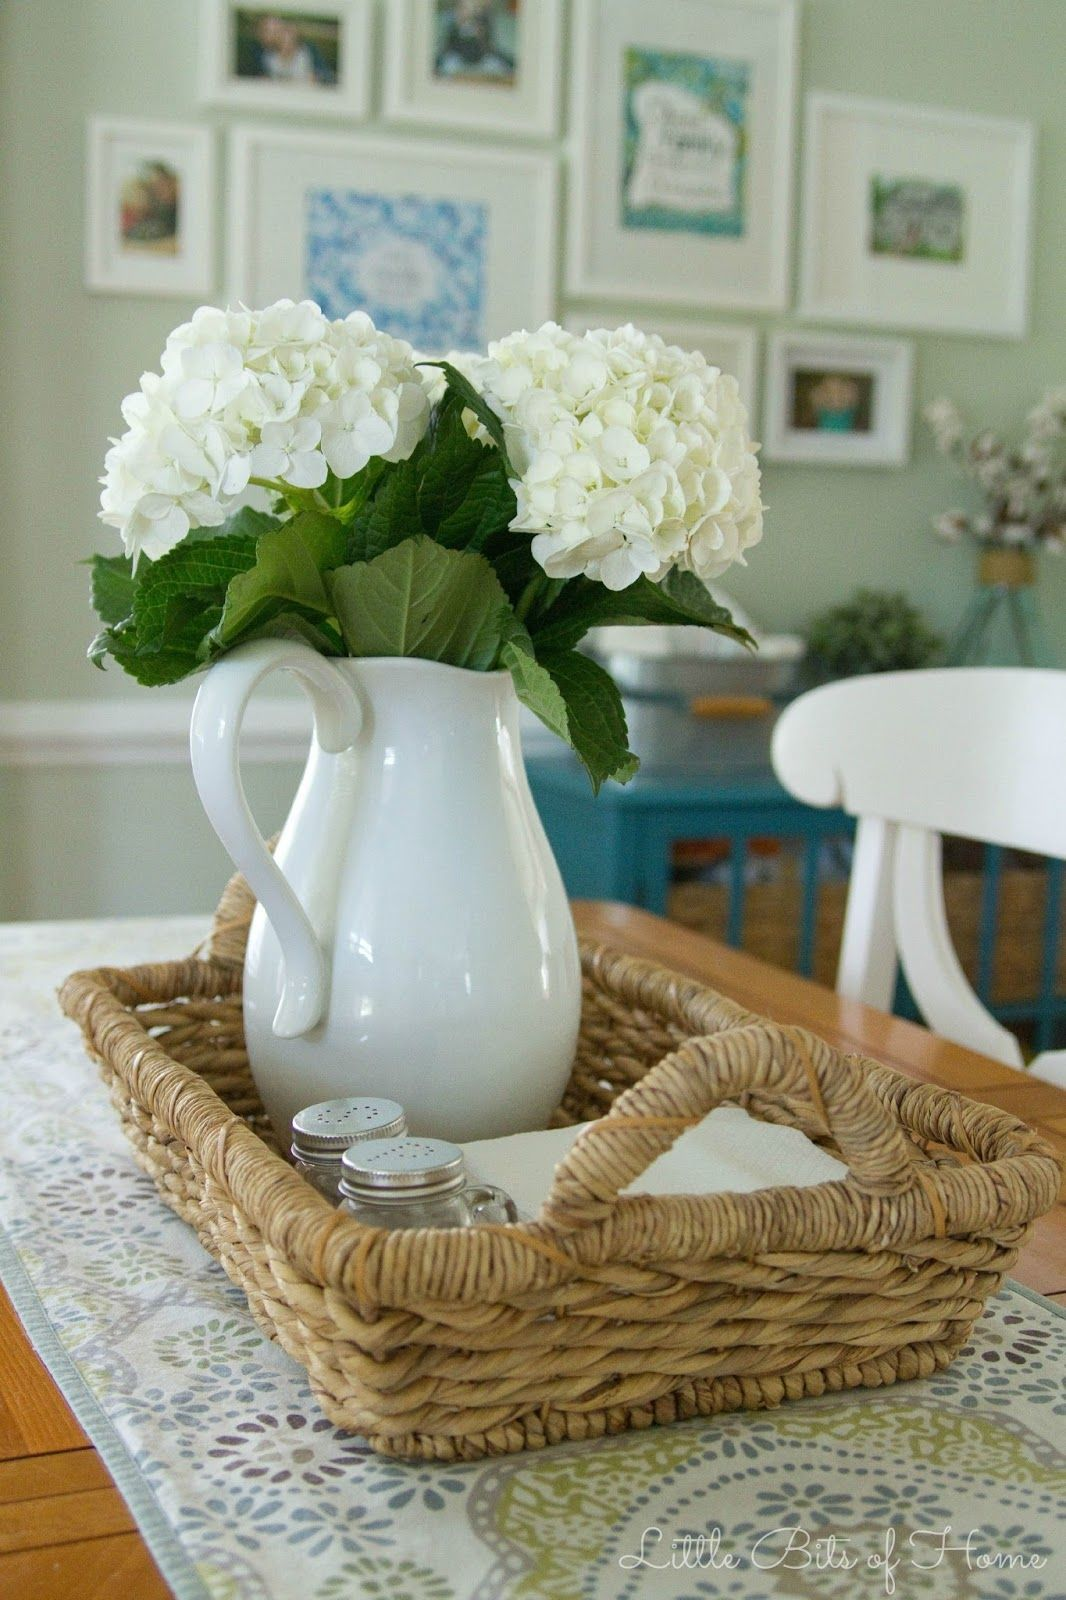 Farmhouse Dining Room Ideas Are Adorable And Lasting This Is Simple And Stunni Dining Room Table Decor Dining Room Table Centerpieces Dining Table Centerpiece